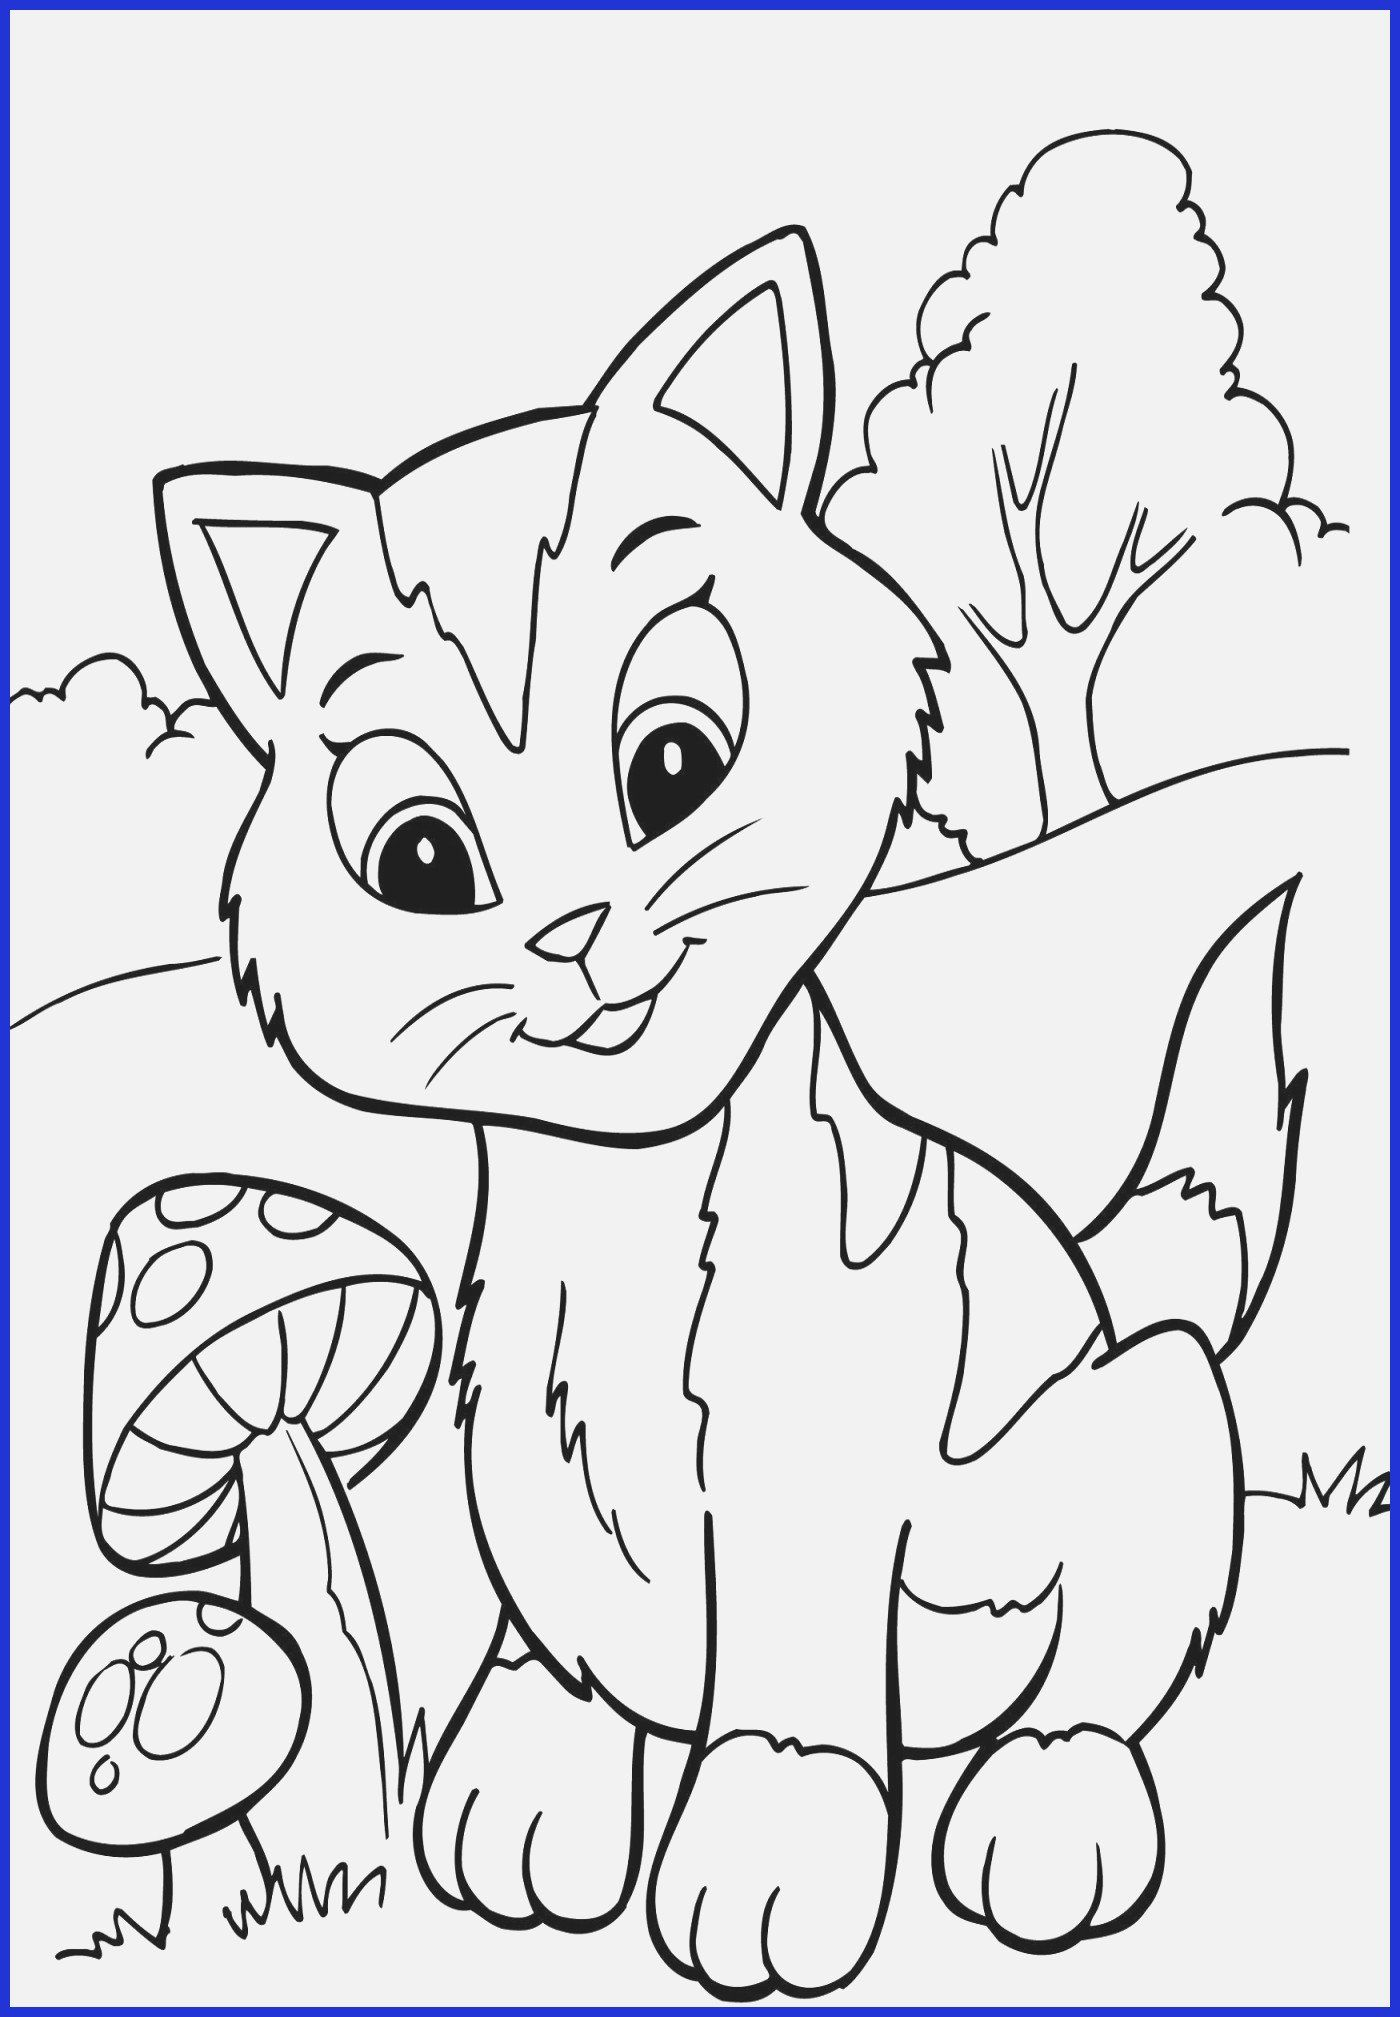 Kitten Coloring Page Super Coloring Kittens Coloring Cat Coloring Page Animal Coloring Pages